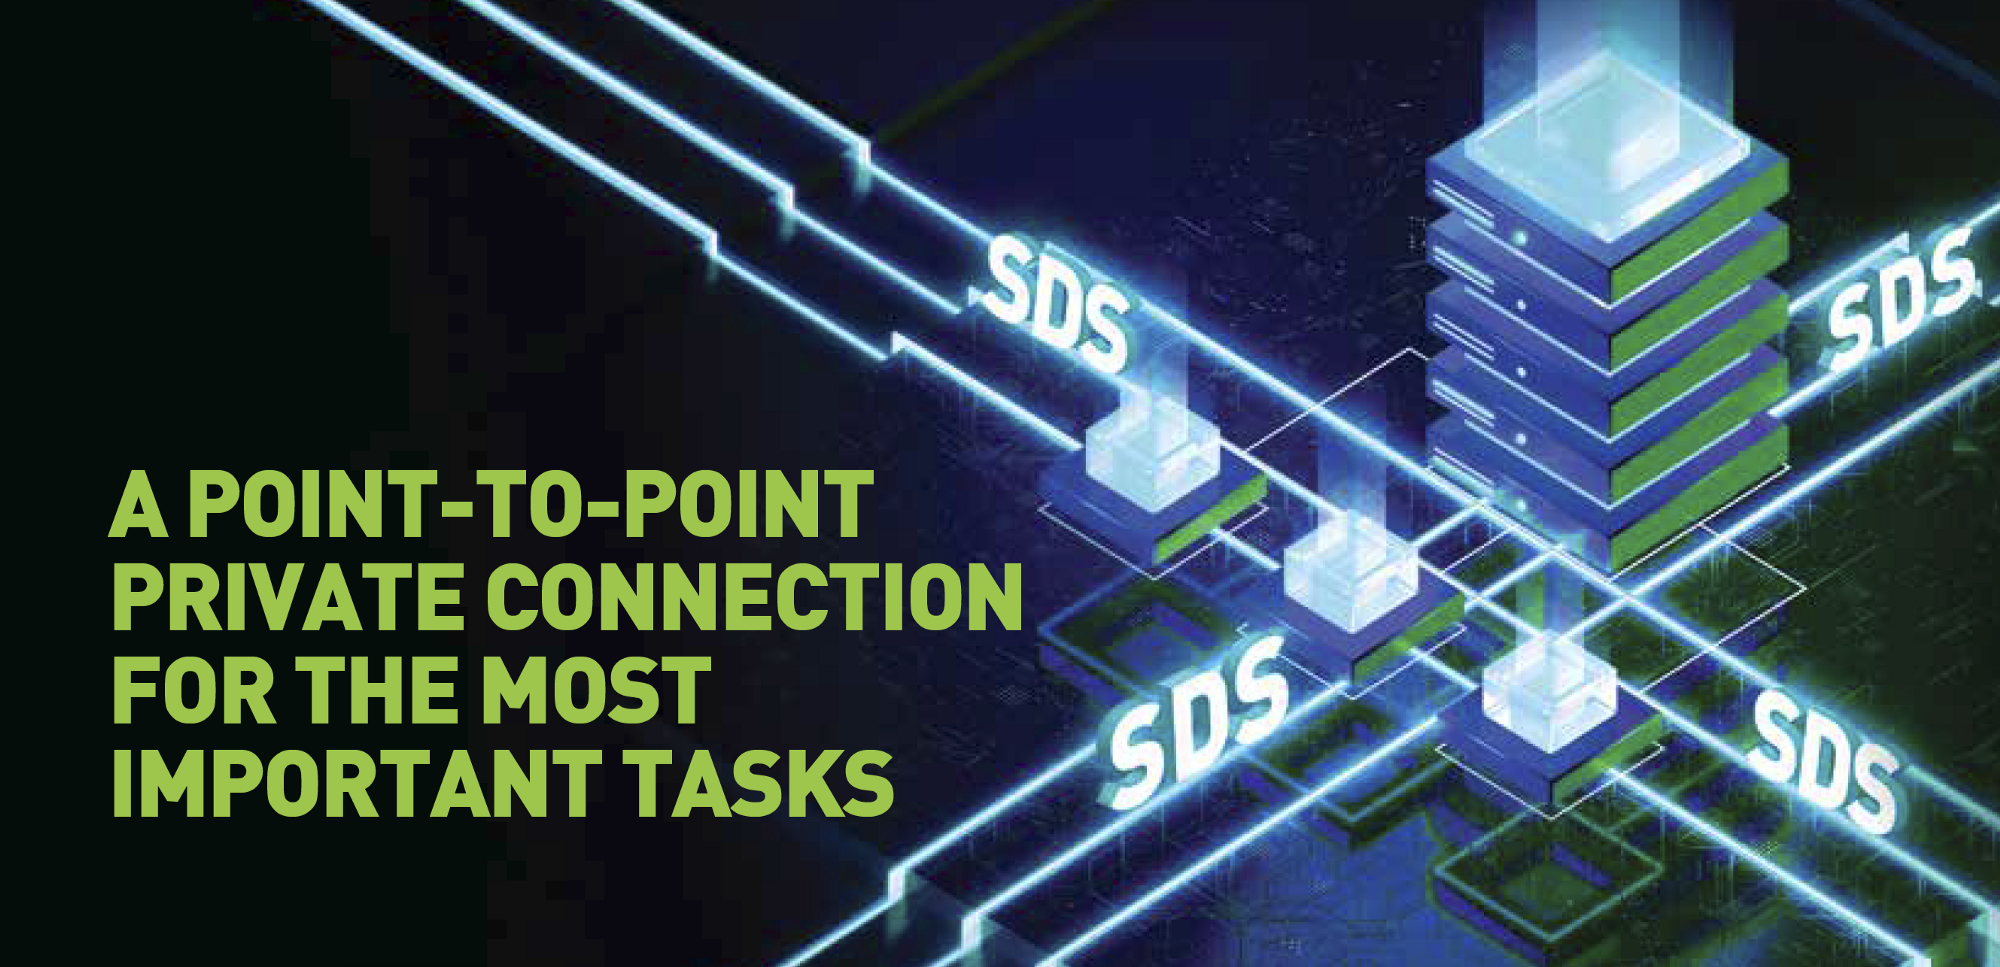 Point-To-Point Private Connection For The Most Important Tasks